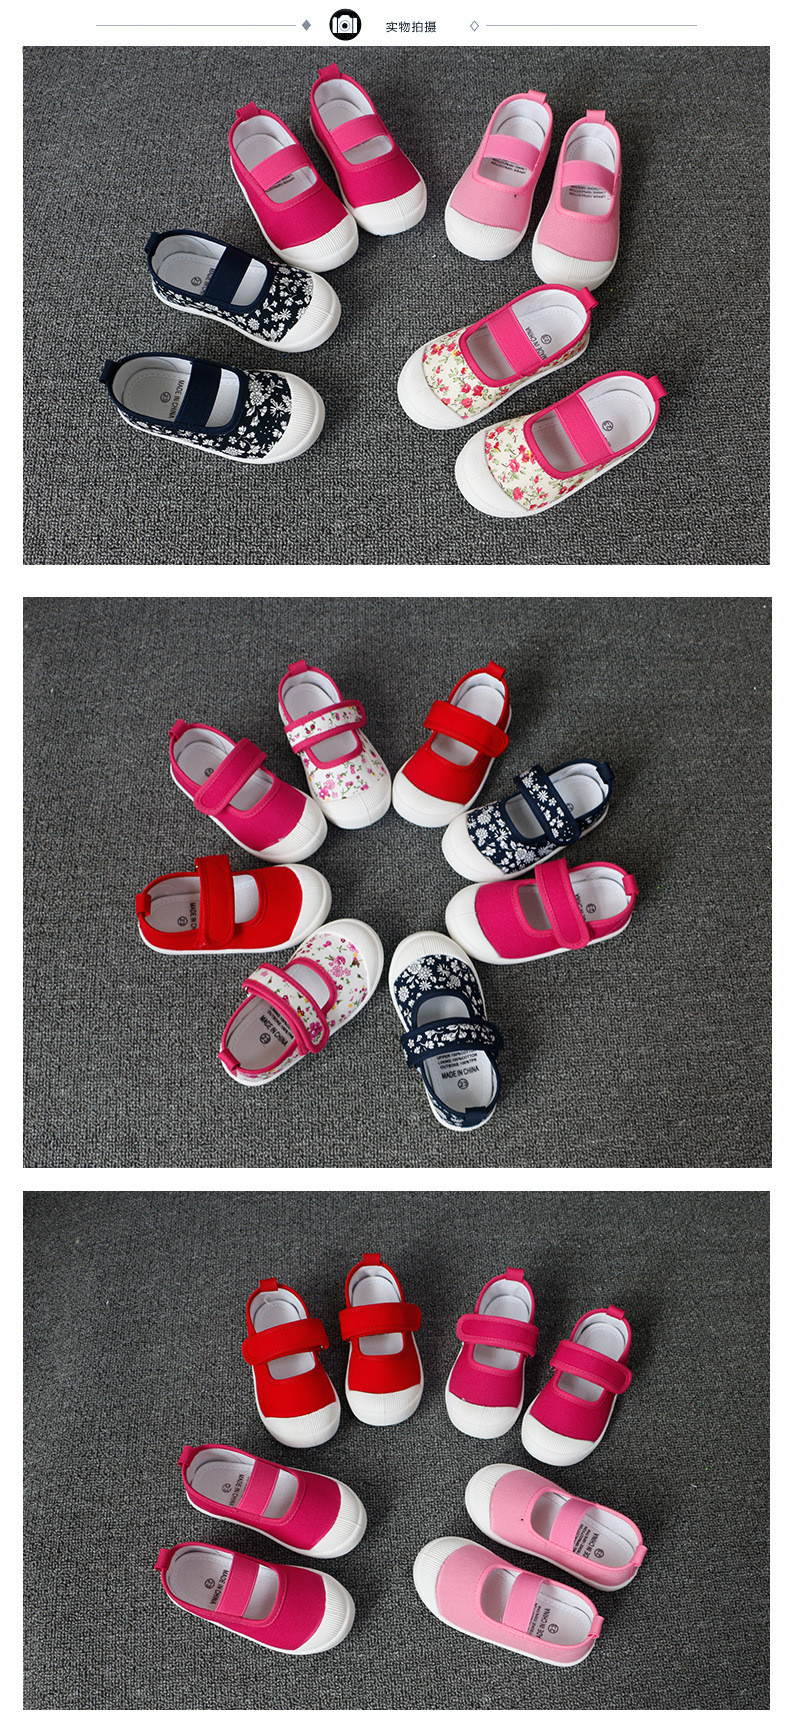 17 children's spring kids baby girls Candy colors floral princess shoes canvas sneakers Toddler infantil shoes for girls 2